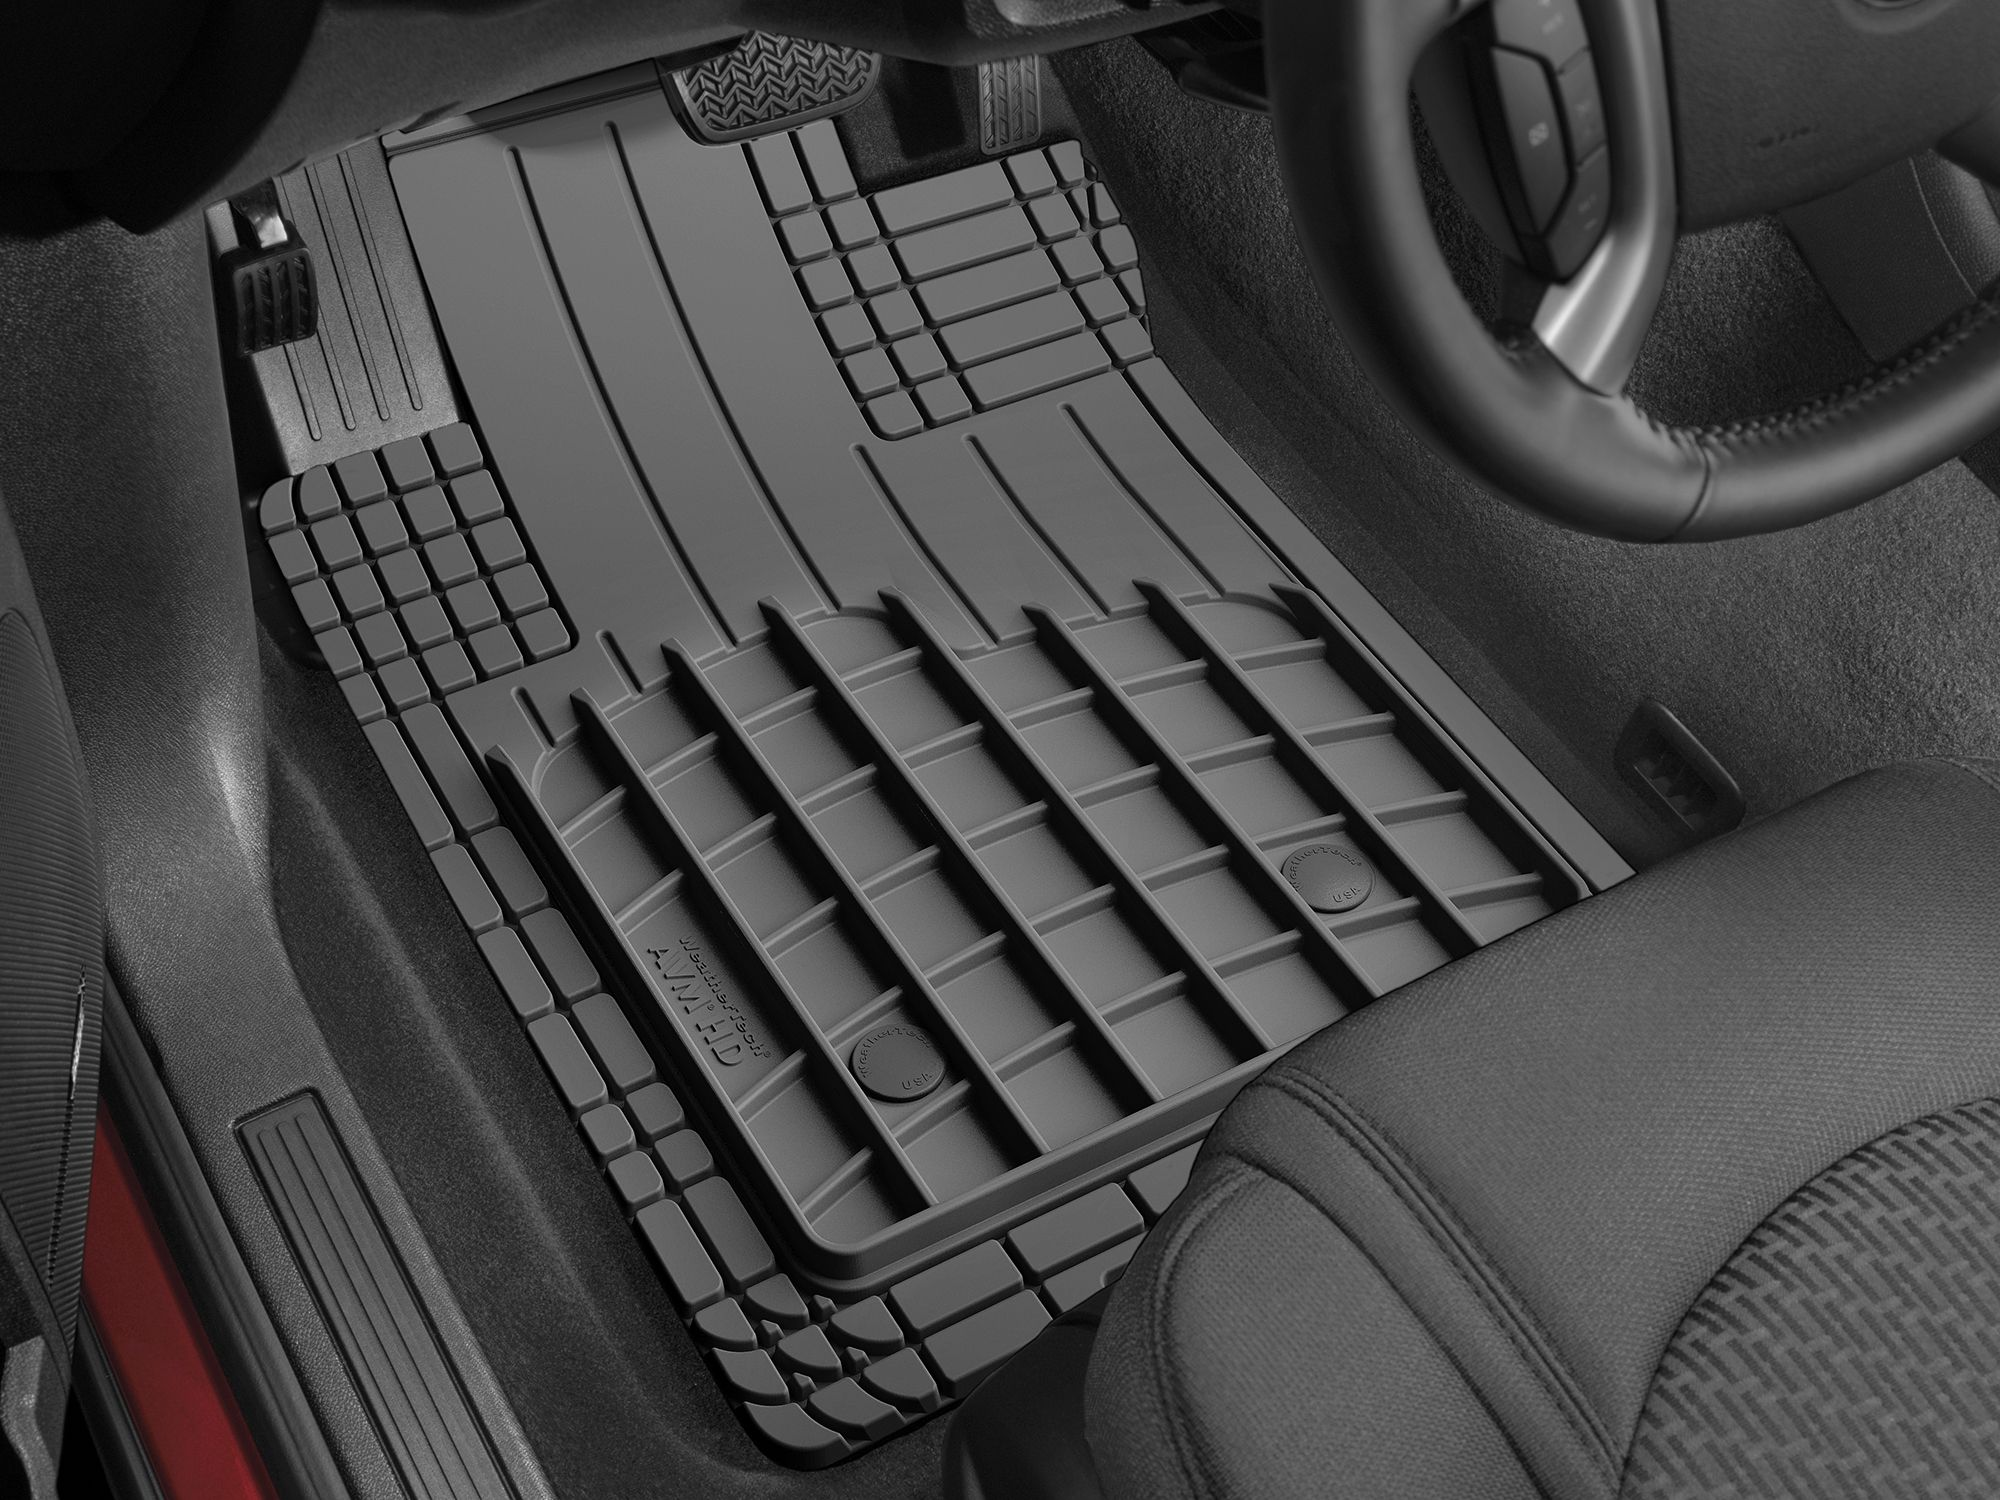 How to unlock weathertech floor mats - The Avm Hd Heavy Duty Semi Universal Floor Mats Are A Trim To Fit Vehicle Floor Mats Made From Material That Is Designed To Trap And Contain Debris And